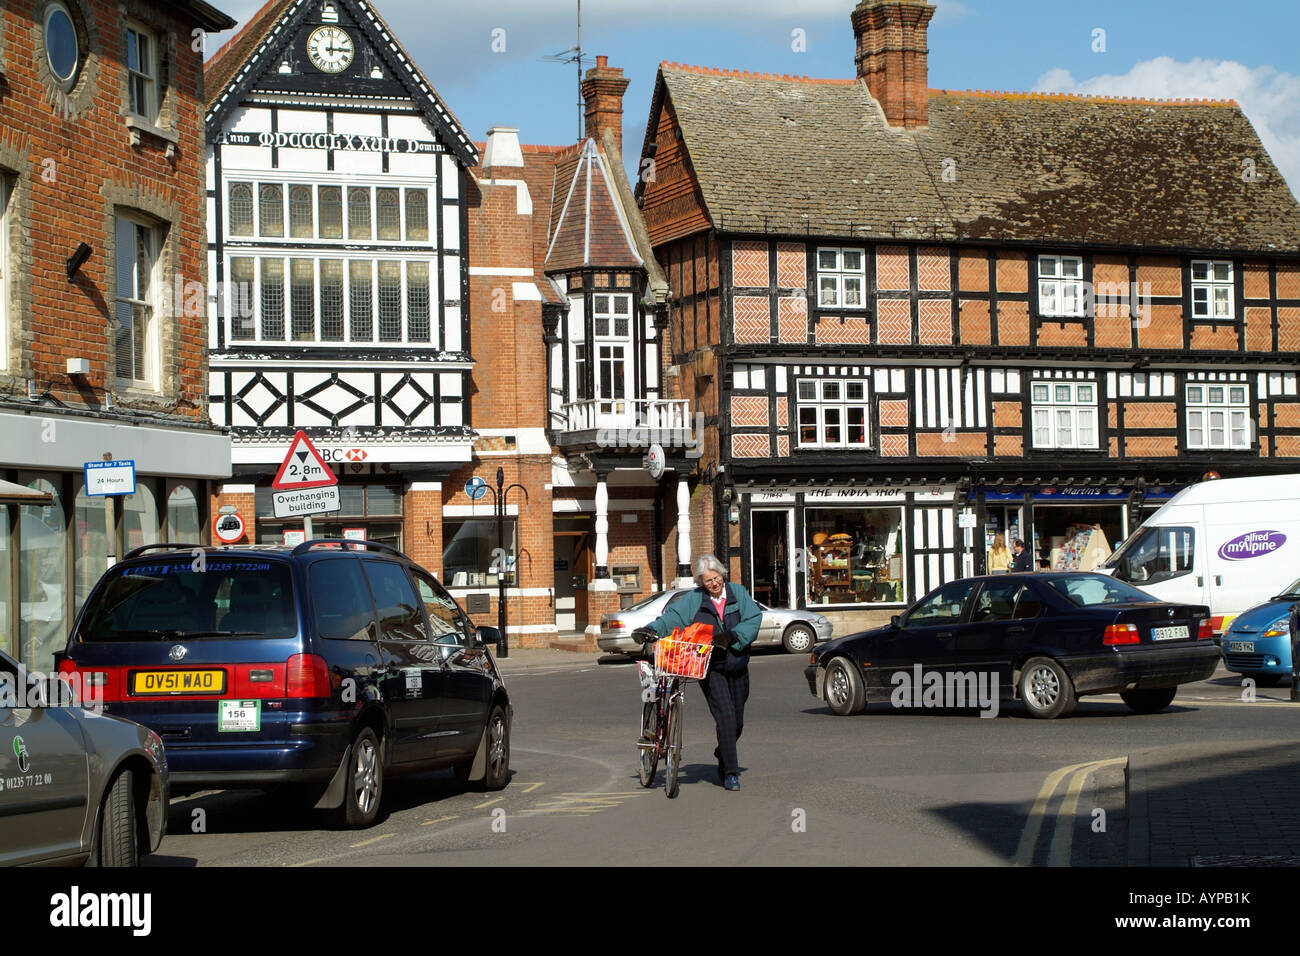 Market Town of Wantage Oxfordshire England - Stock Image